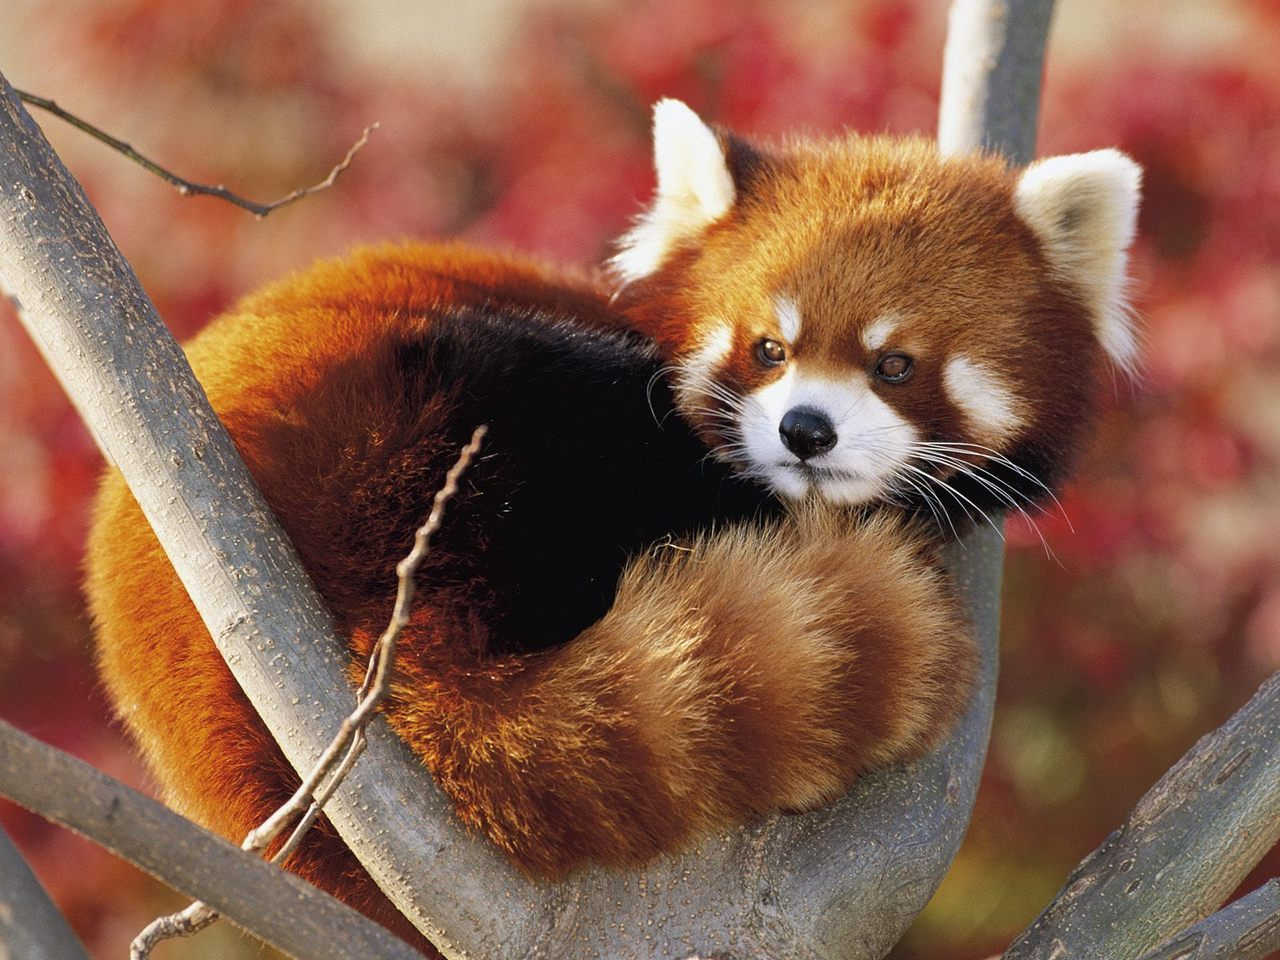 pray-for-a-better-world:  In danger of extinction: Red panda.